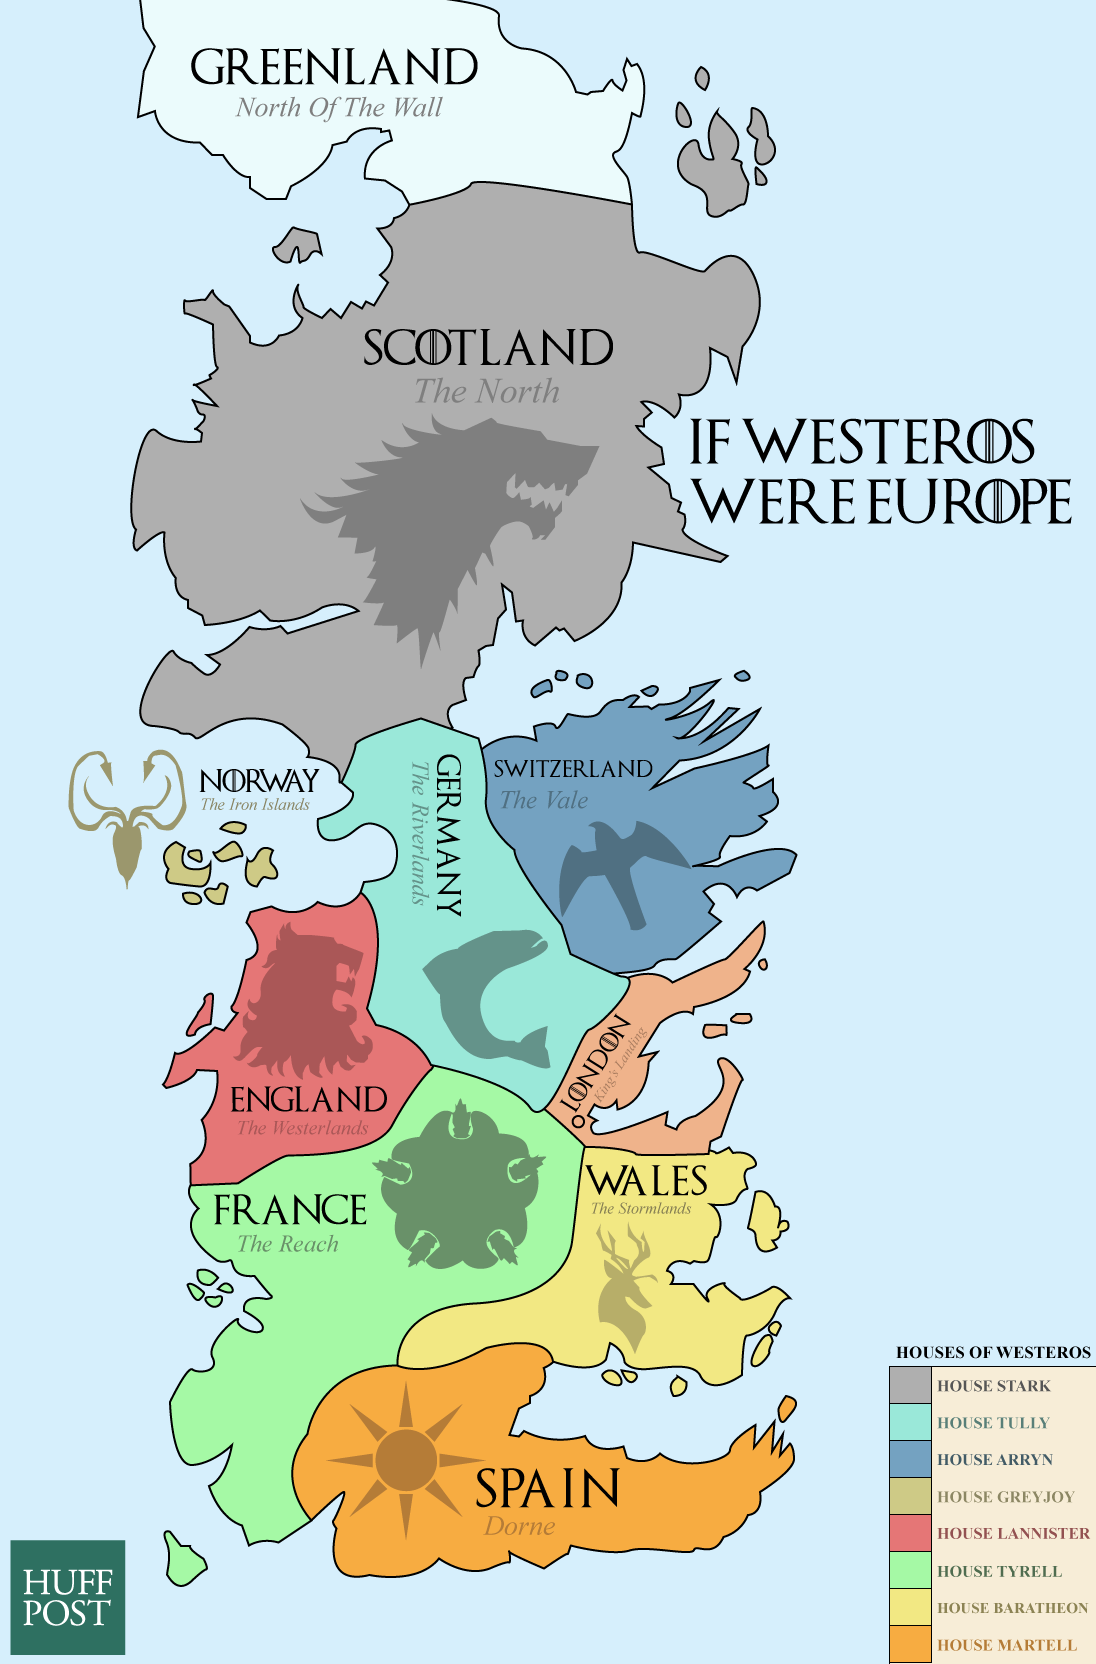 This Map Of Westeros Shows The European Equivalents Of The ... Game O Thrones Map on sons of anarchy, fire and blood, gendry map, the kingsroad, themes in a song of ice and fire, a game of thrones collectible card game, clash of kings map, justified map, dallas map, a storm of swords map, valyria map, the prince of winterfell, world map, downton abbey map, star trek map, jericho map, a storm of swords, lord snow, camelot map, guild wars 2 map, spooksville map, winter is coming, walking dead map, a clash of kings, narnia map, a game of thrones, jersey shore map, winterfell map, bloodline map, a game of thrones: genesis, works based on a song of ice and fire, game of thrones - season 1, the pointy end, a golden crown, got map, game of thrones - season 2, tales of dunk and egg, qarth map,